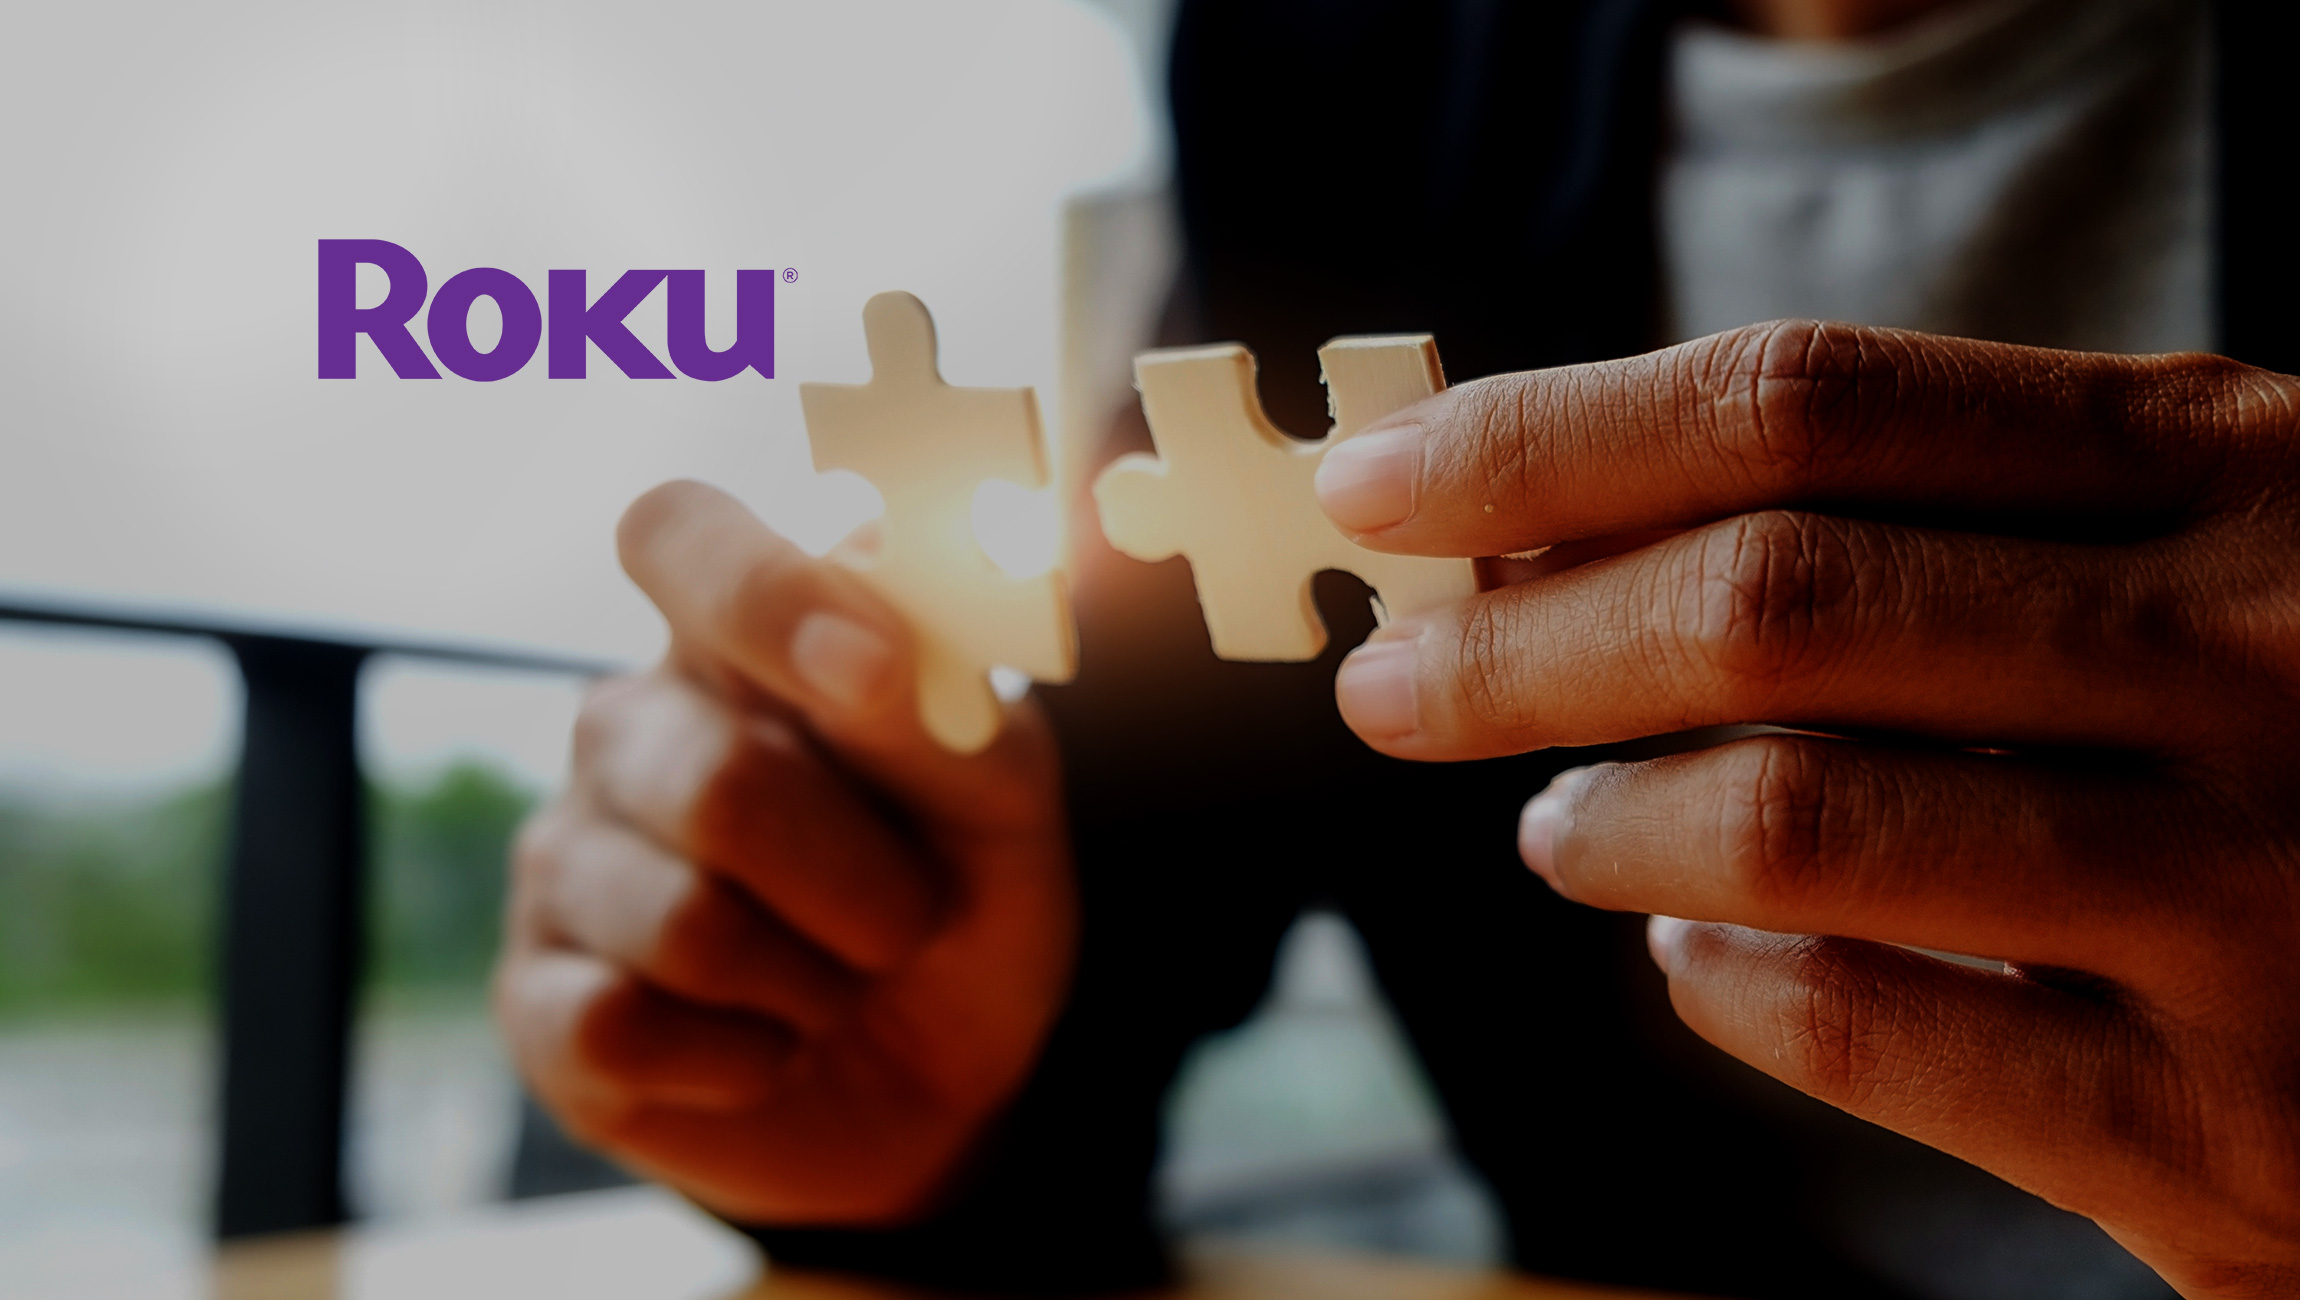 Roku To Acquire Nielsen's Targeted Ad Business As Part Of Wider Strategic Partnership